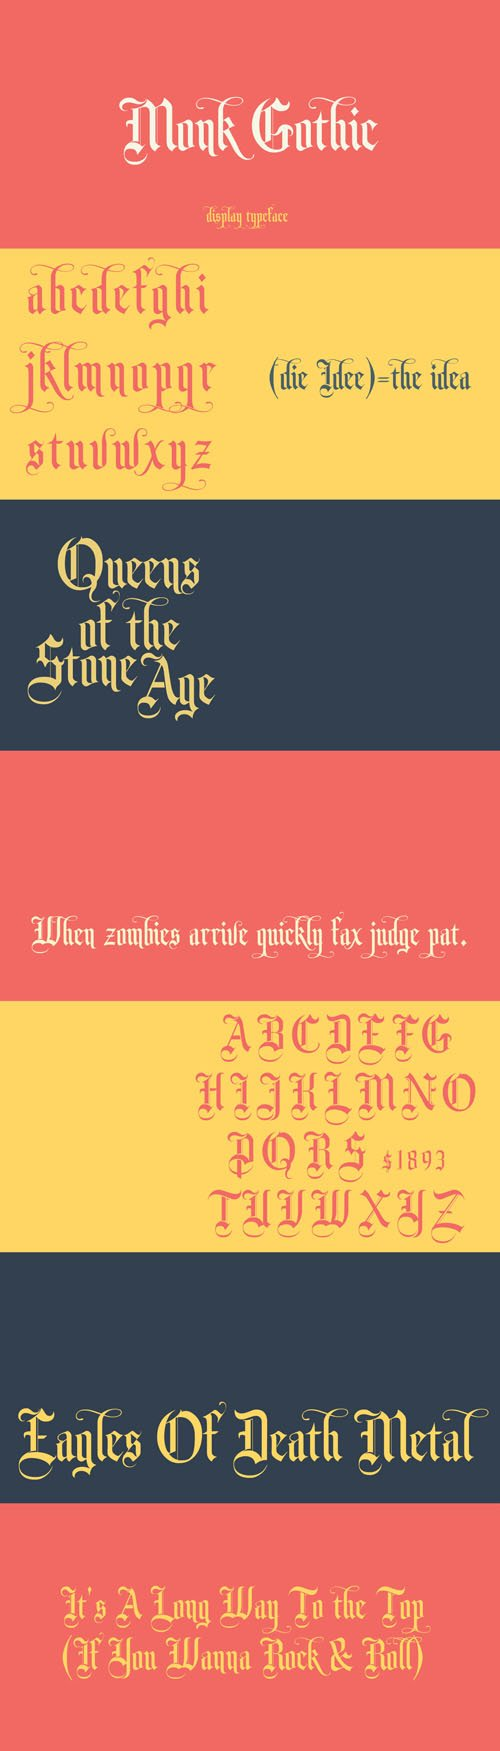 Monk Gothic Display Font